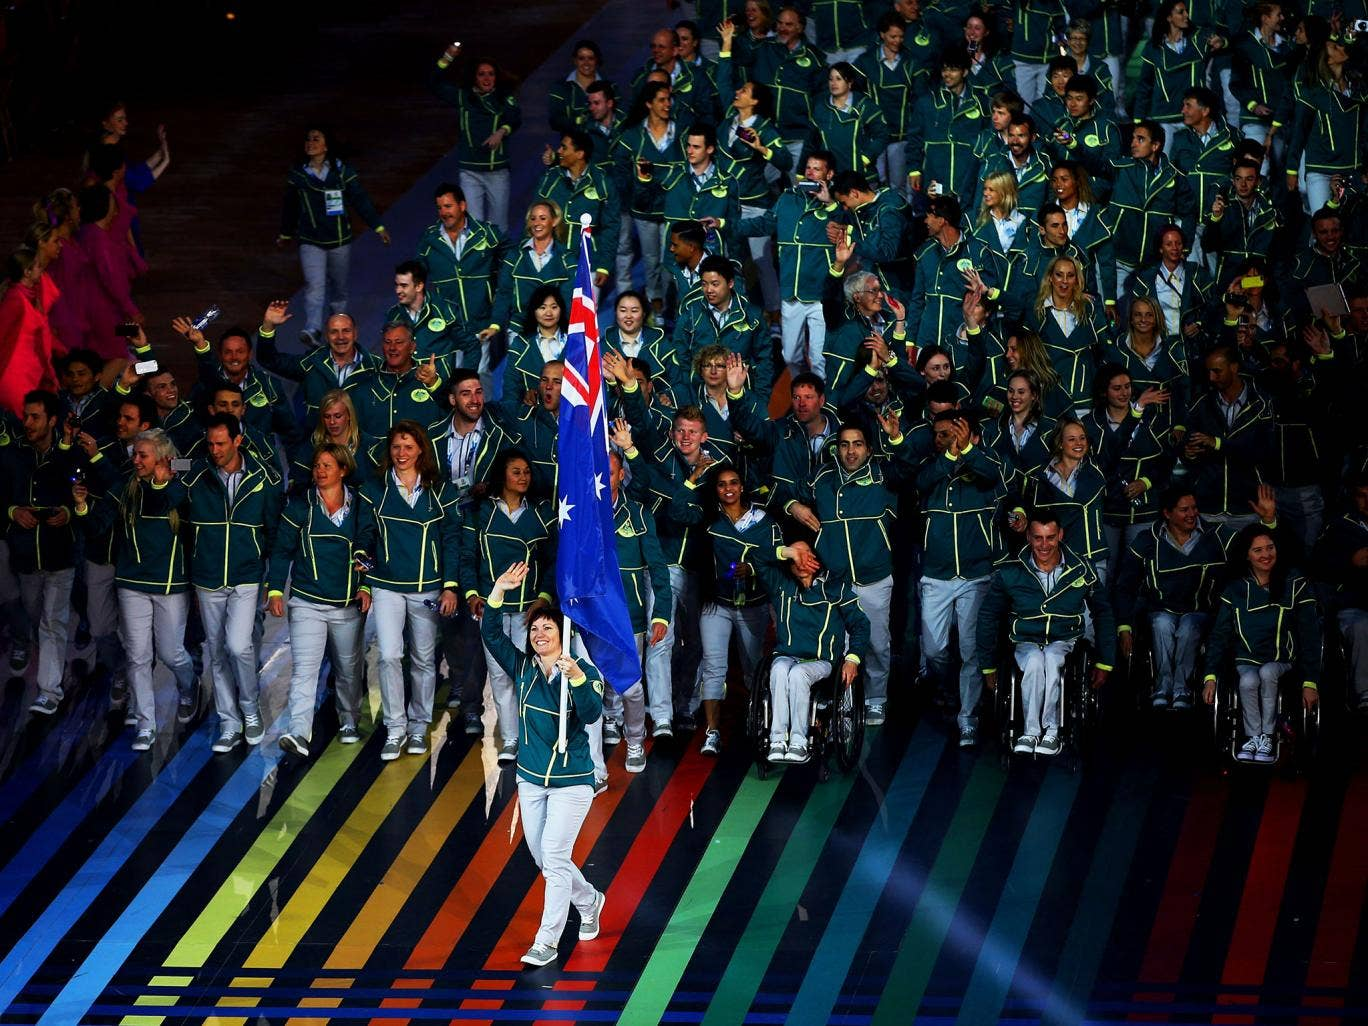 Team Australia arrive at the Commonwealth Games opening ceremony